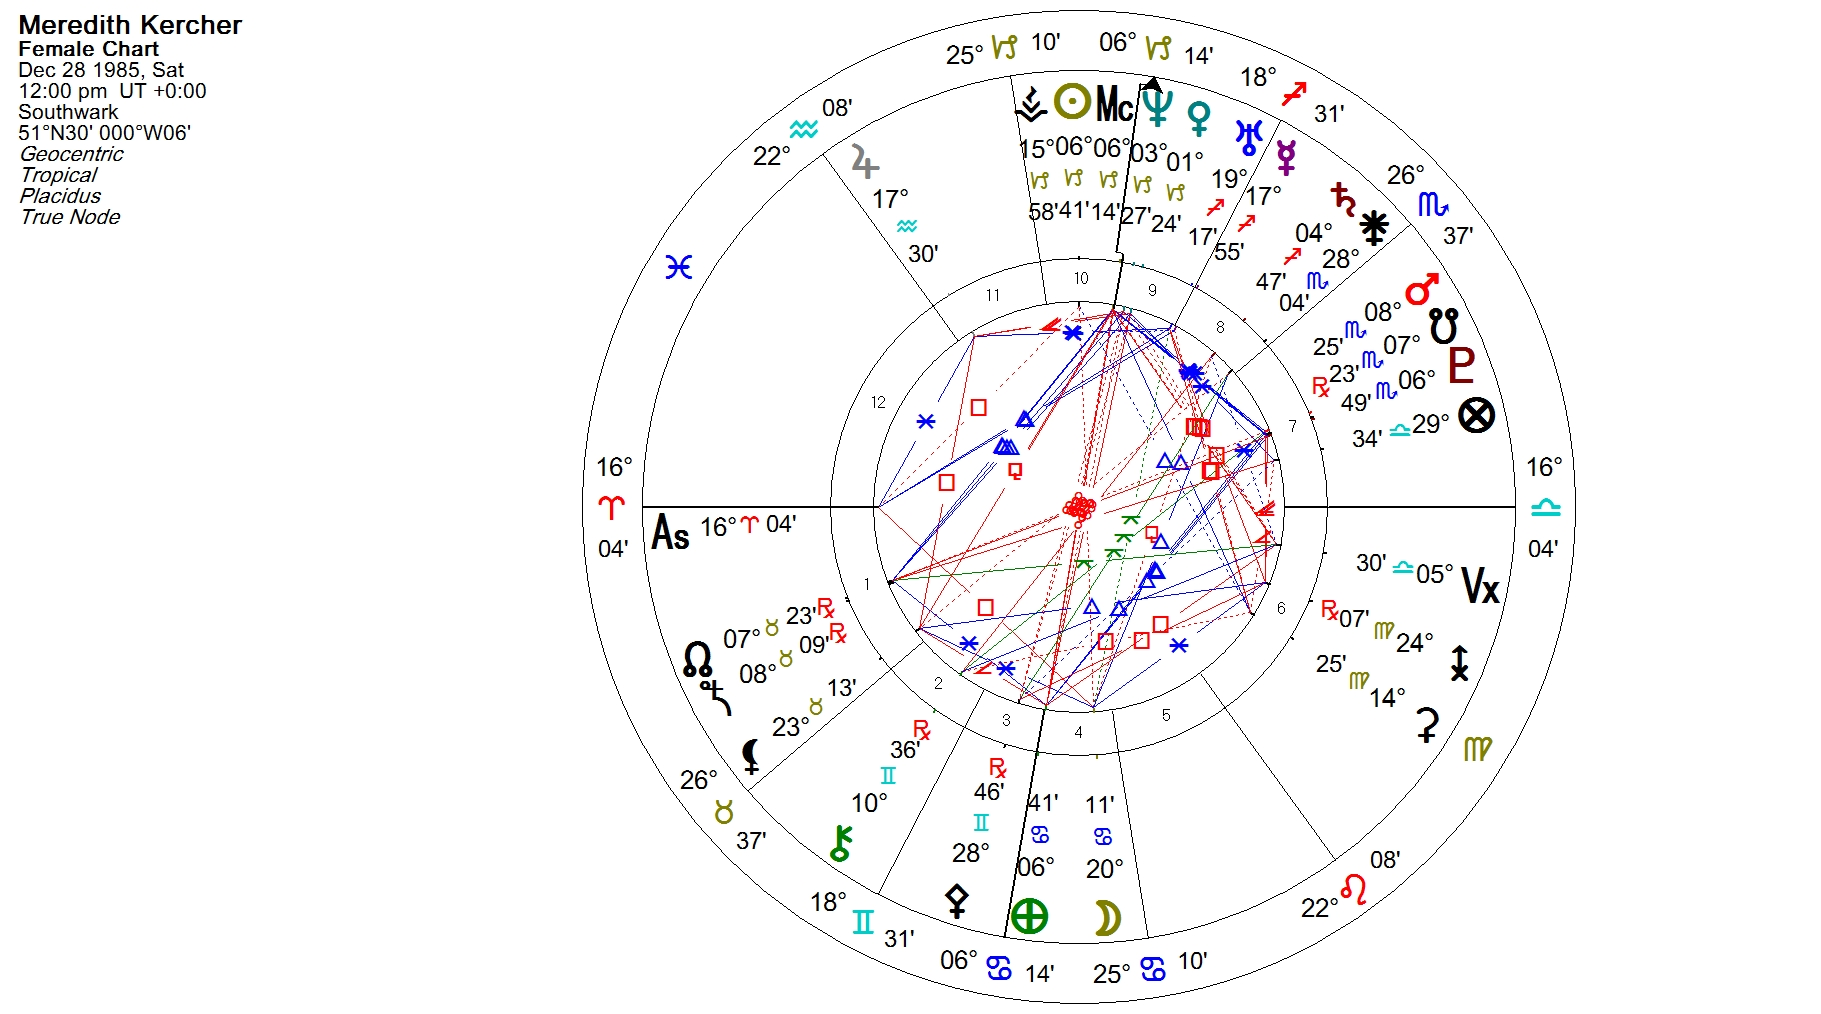 Meredith kercher julie demboskis astrology meredith kercher natal chart placidus nvjuhfo Image collections